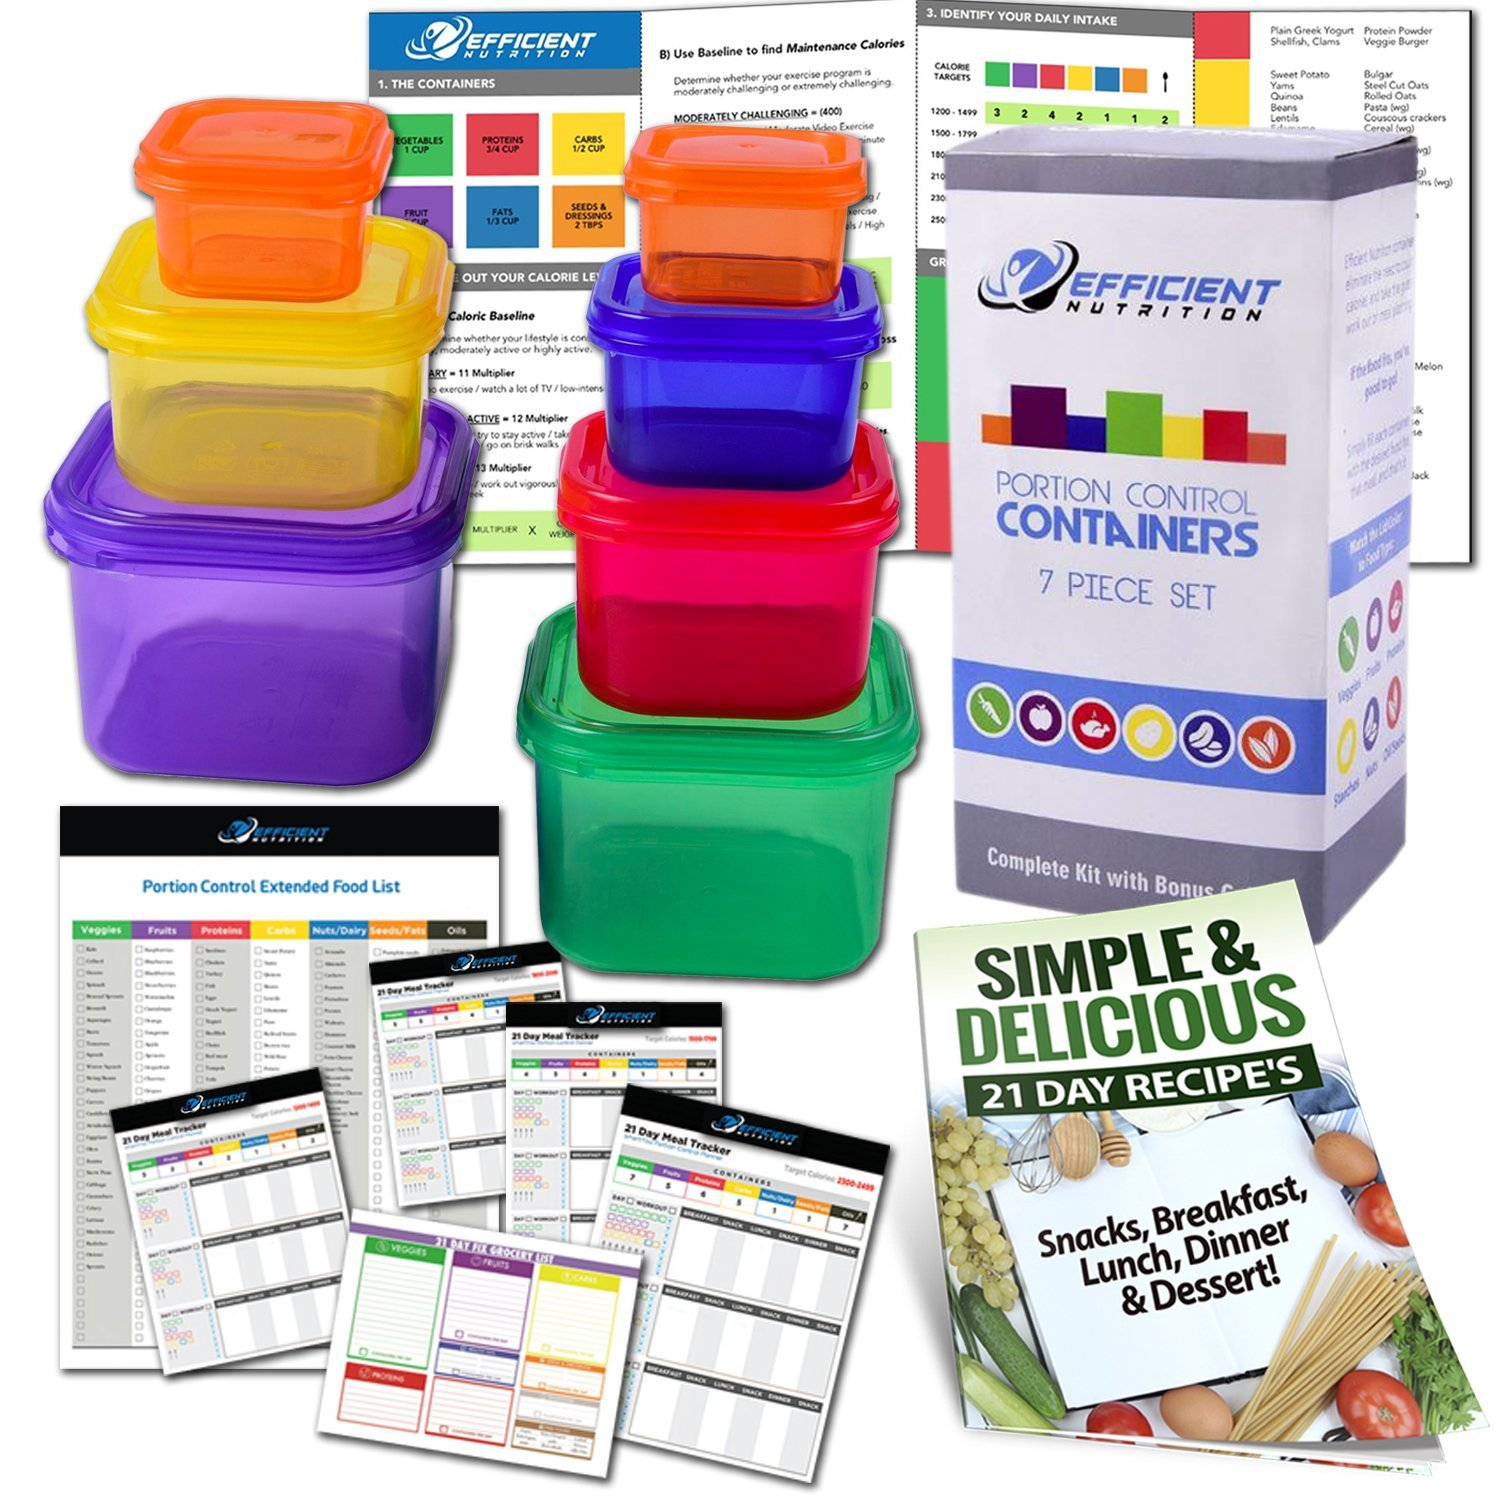 Efficient Nutrition Portion Control Containers